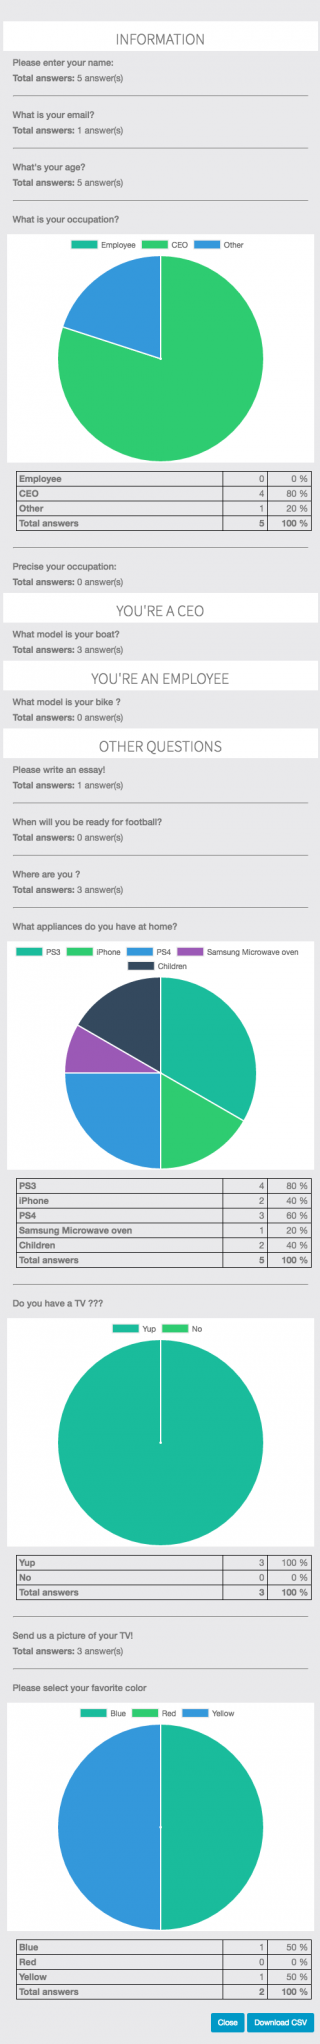 survey_results_view_01-320x2044